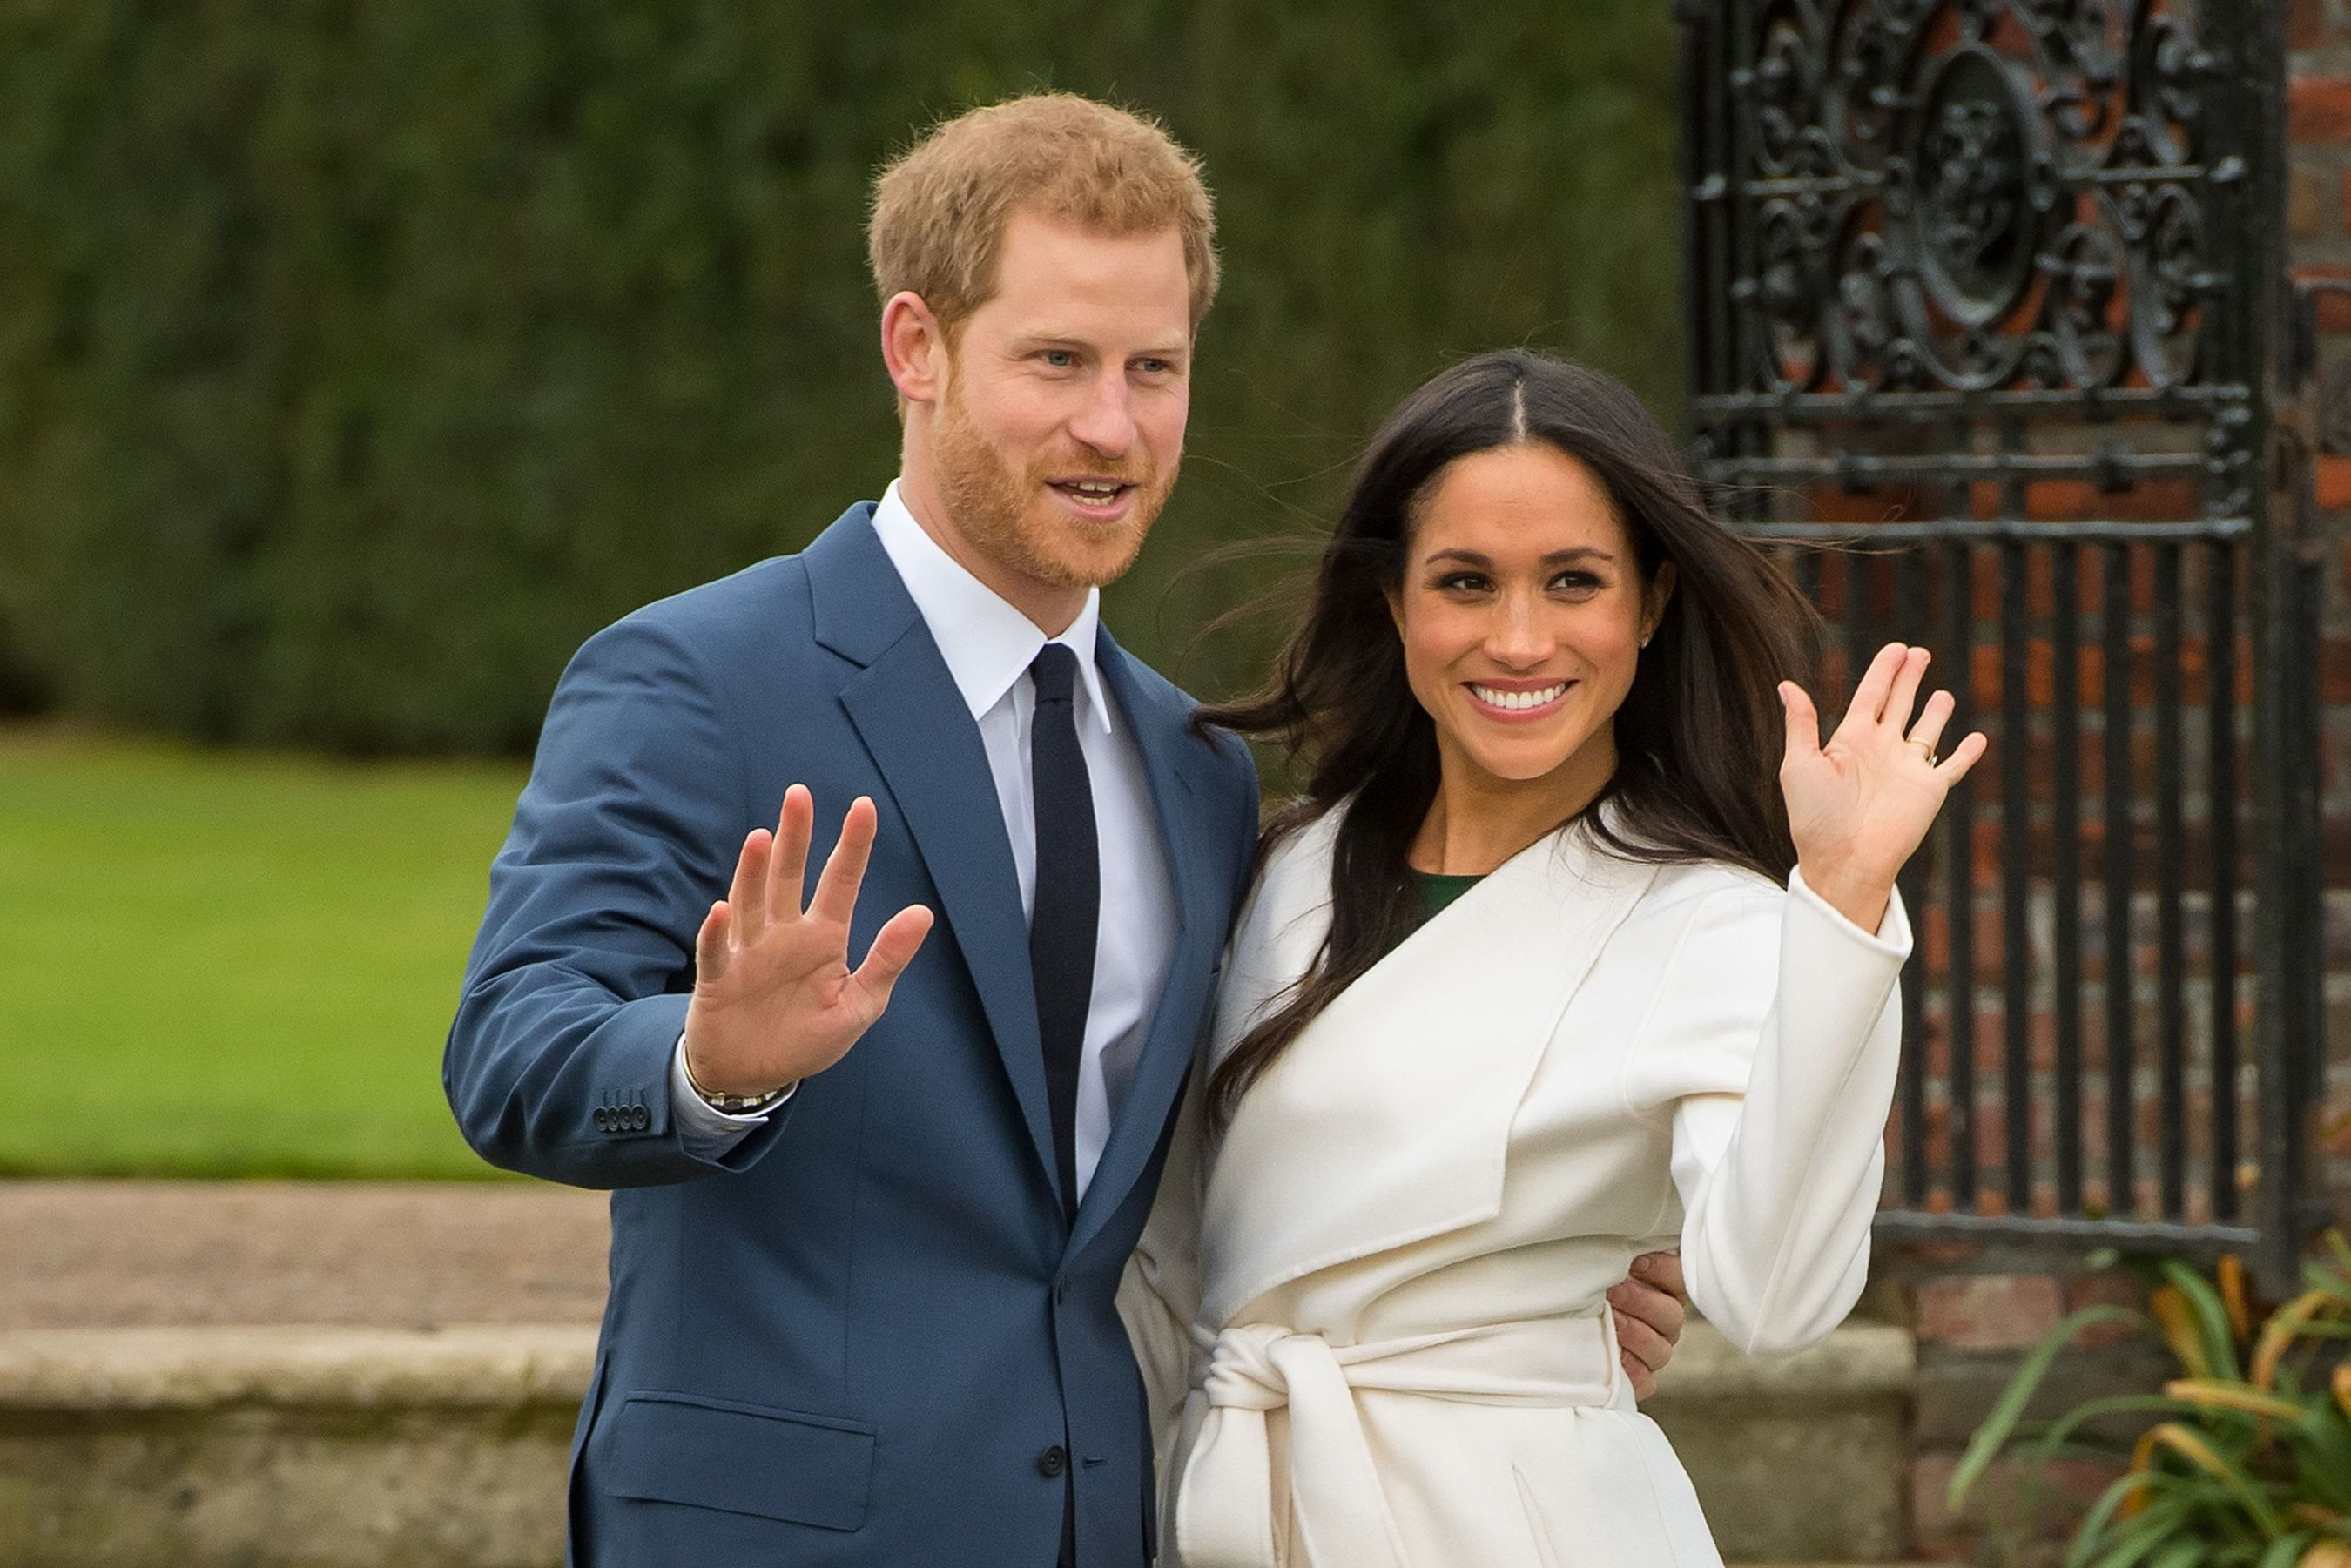 File photo dated 27/11/17 of Prince Harry and Meghan Markle. US president Donald Trump has said he is not aware of any invitation for him to attend their wedding.